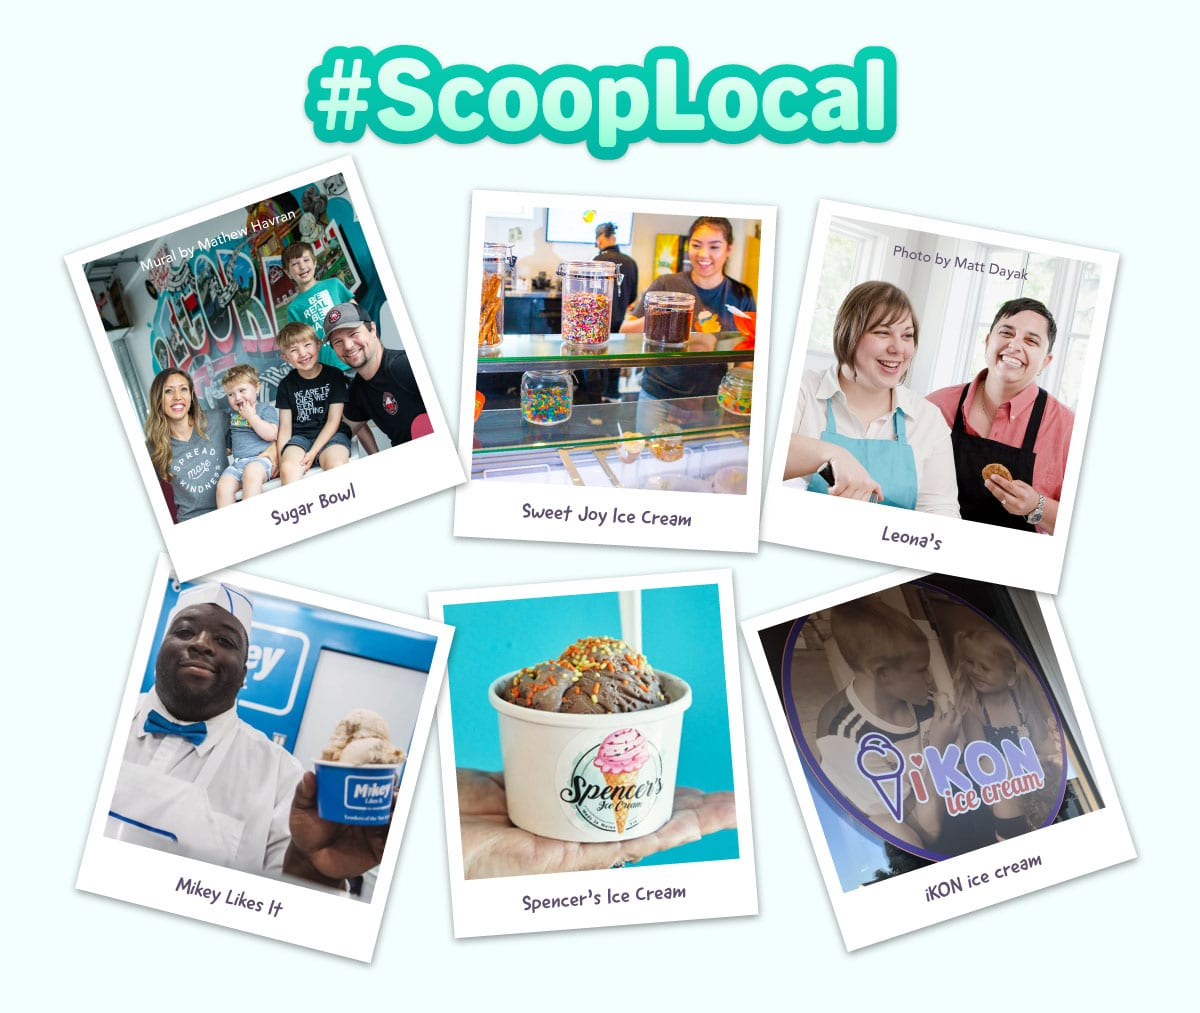 Enlightened to Close E-Commerce on National Ice Cream Day, Invites Fans to #ScoopLocal